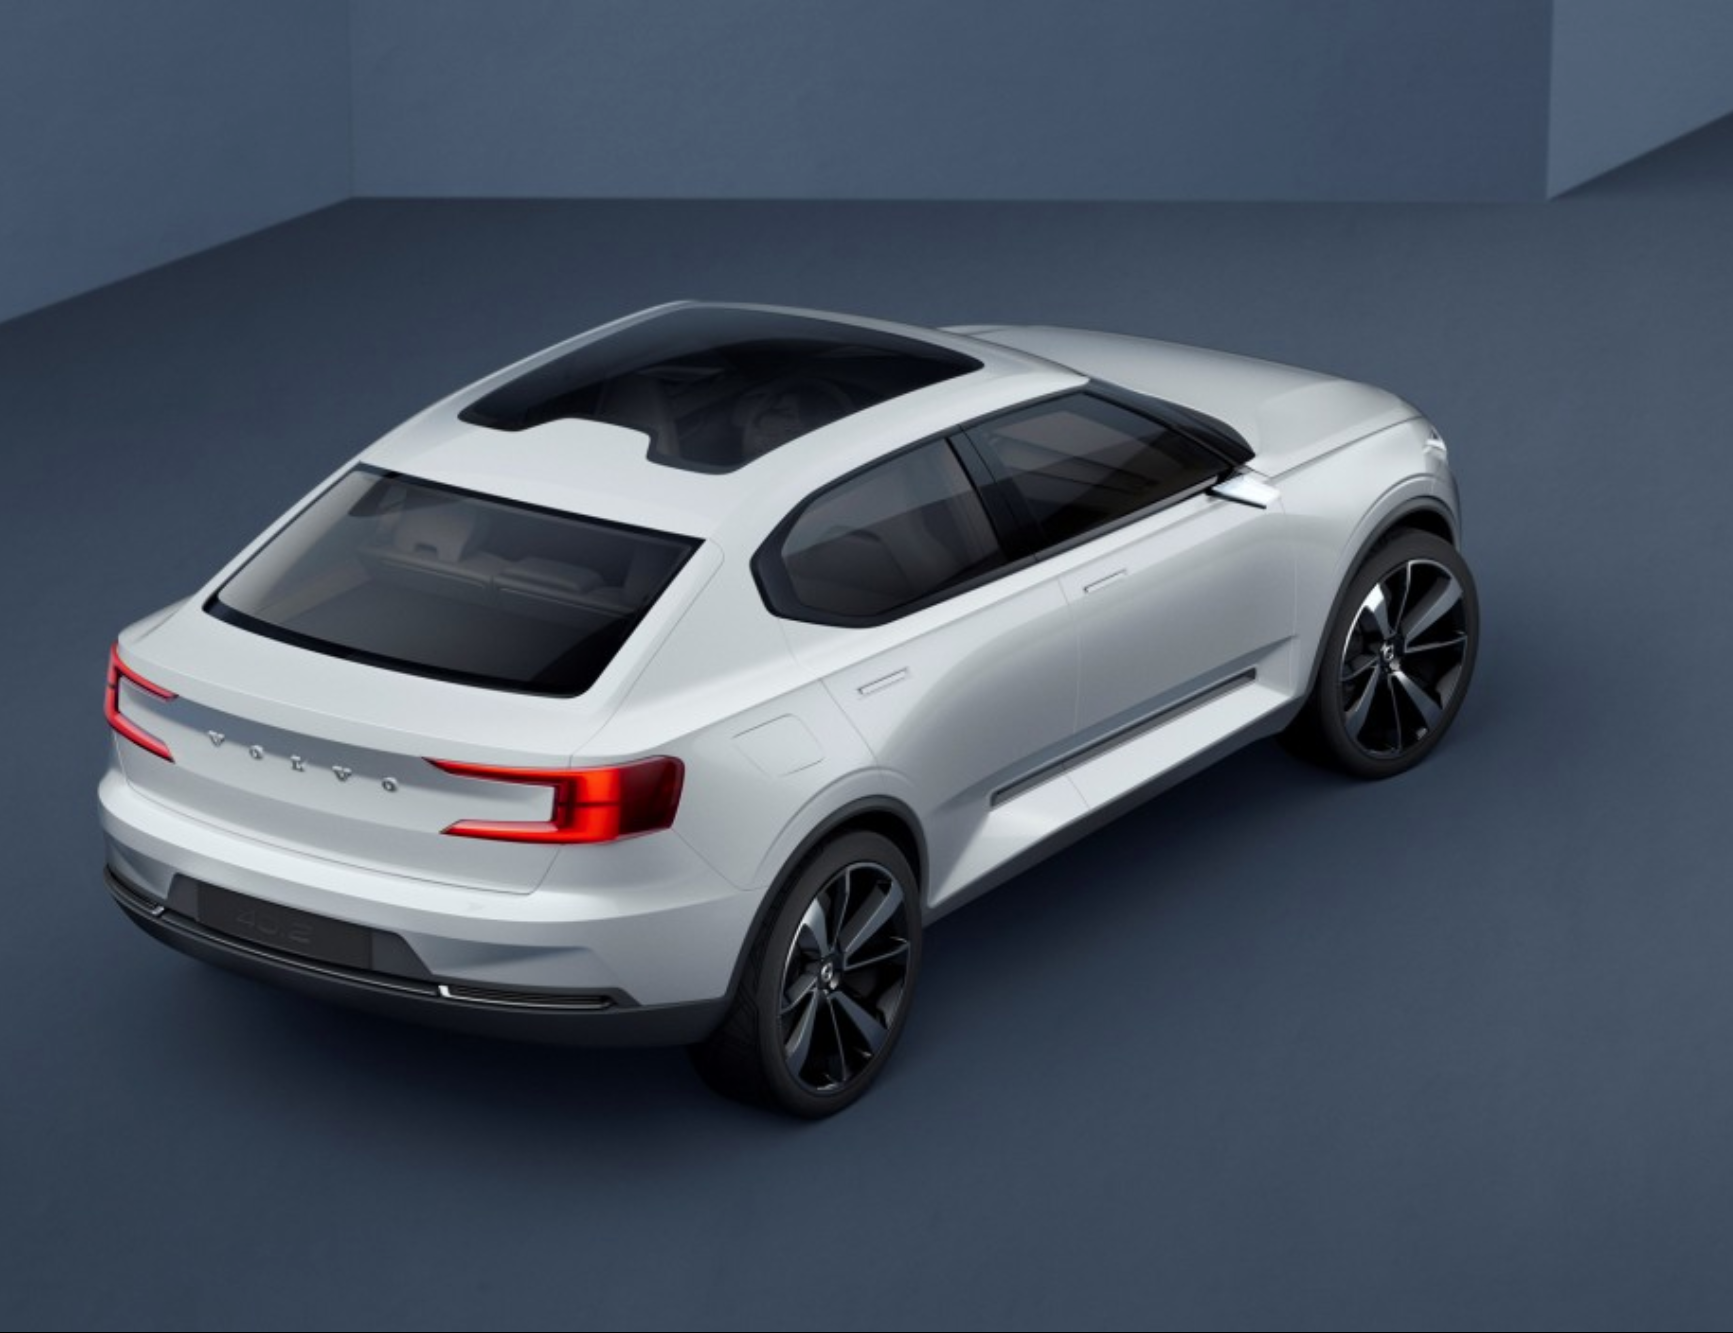 Polestar 2 From Volvo Electric Sedan With 350 Mile Range